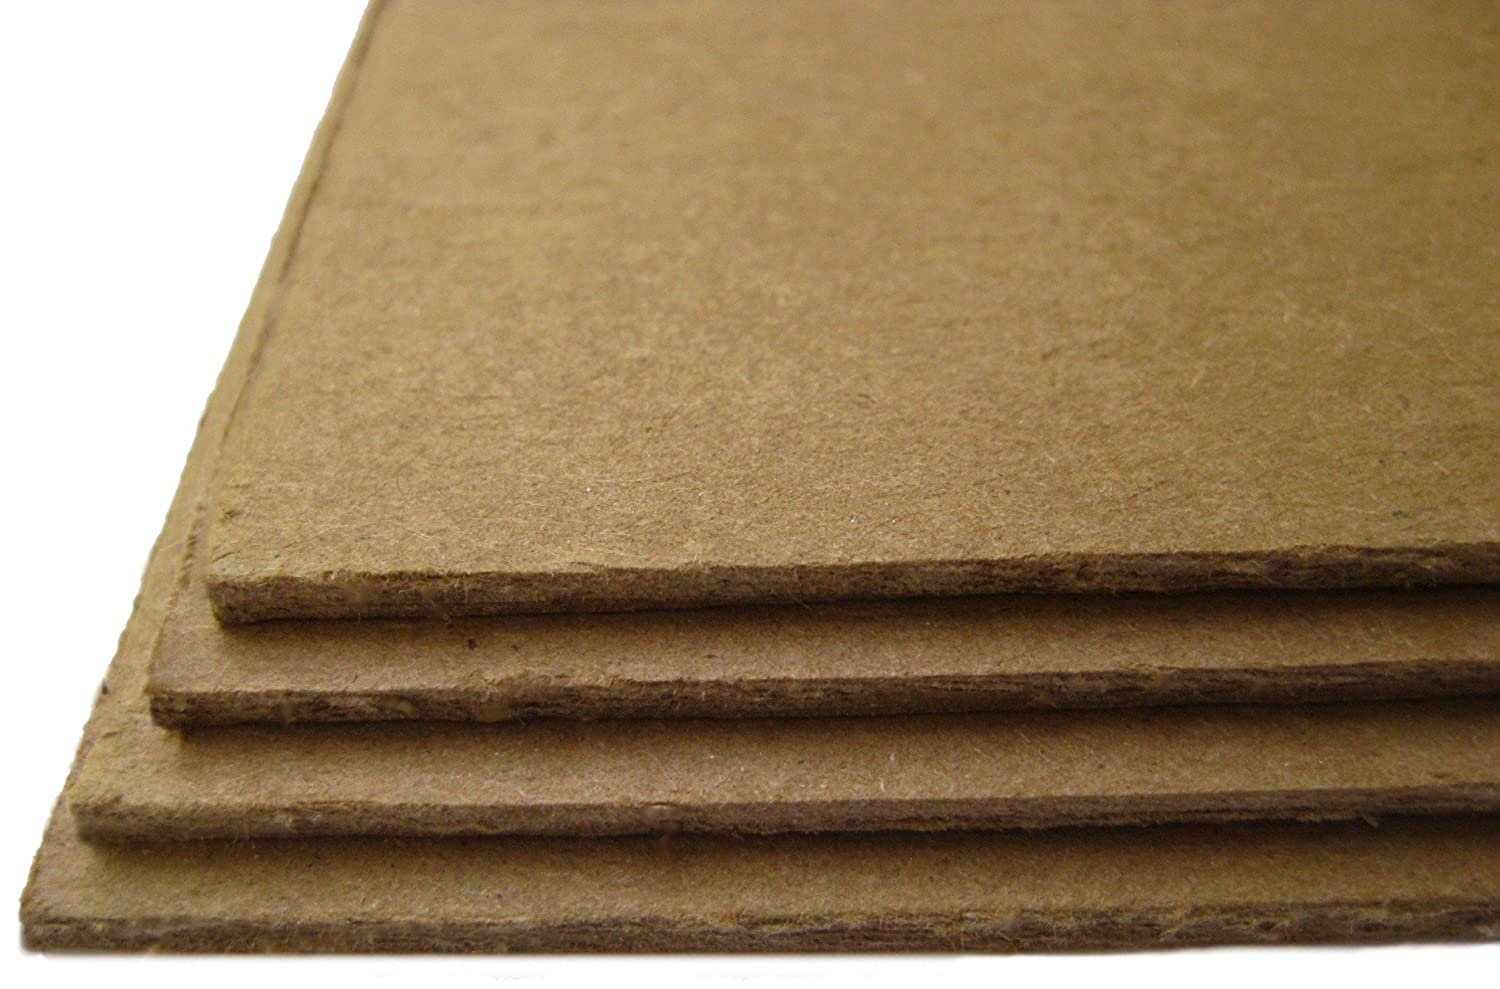 50 Sheets Brown Chipboard 100 Point Extra Thick 5 X 5 Inches Square Scrapbook Album Size .100 Caliper XXX Heavy Cardboard as Thick as 25 Sheets 20# Paper